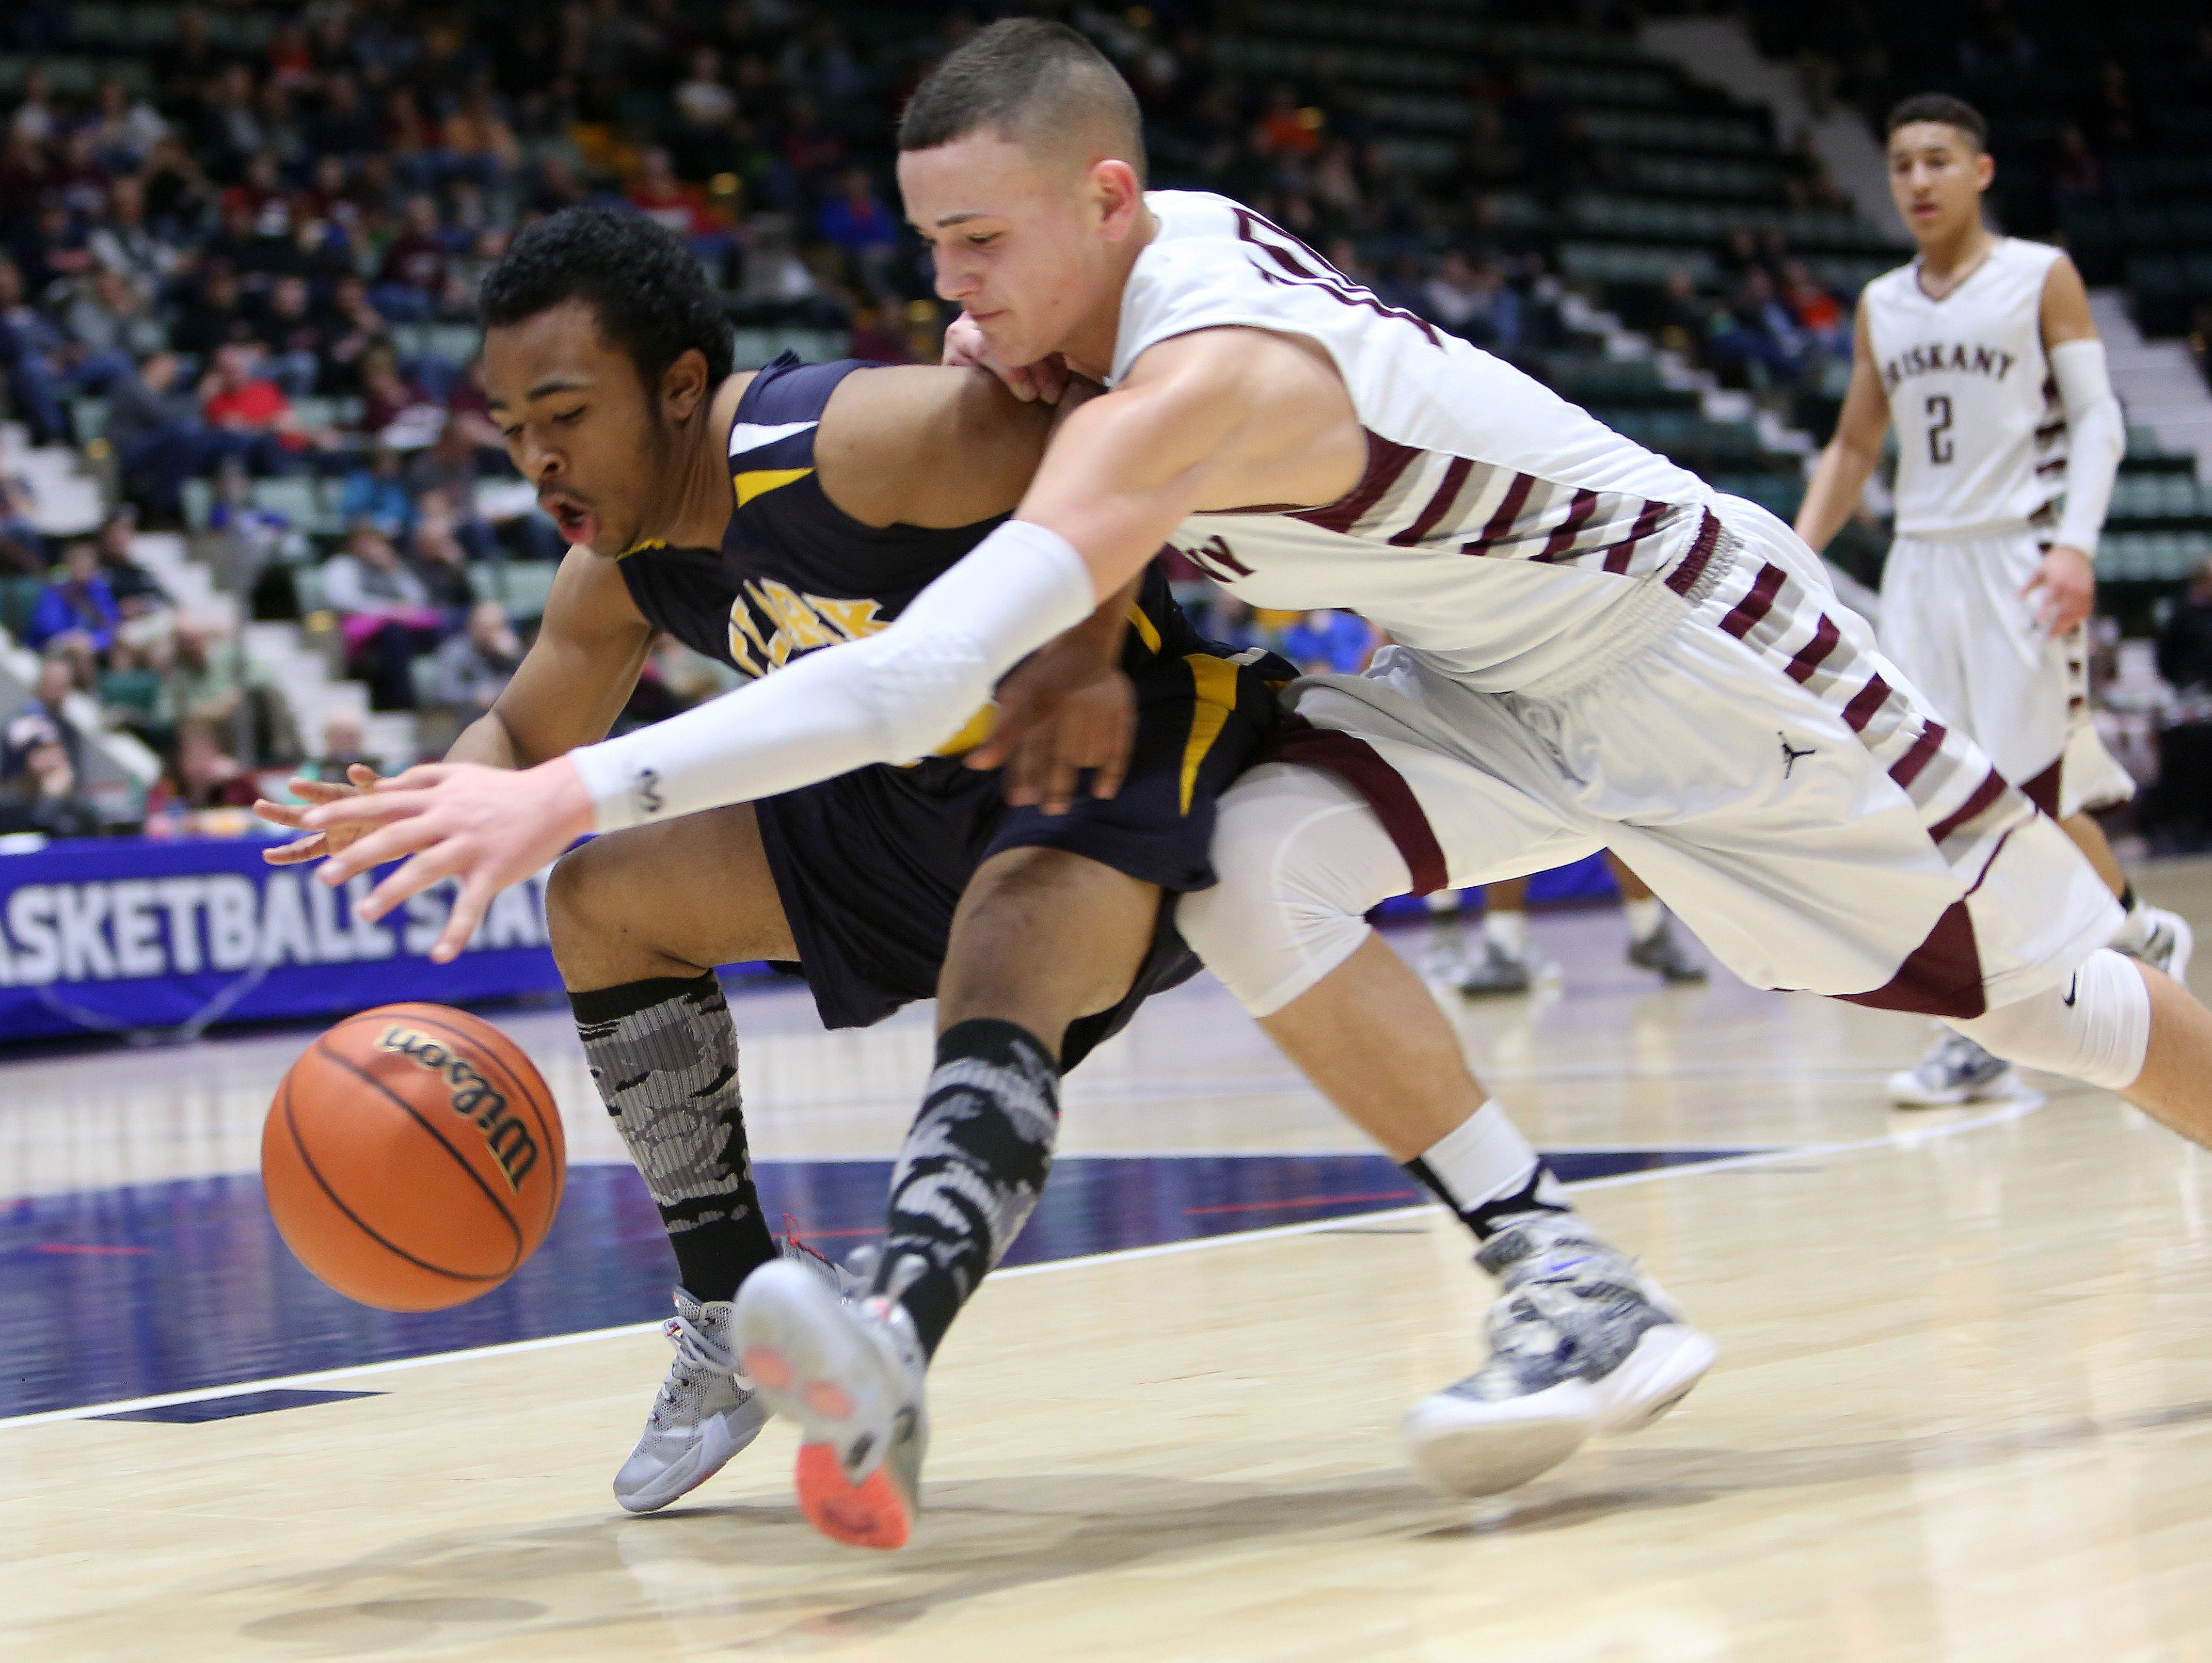 From left, Clark Academy's Brice Banks (10) and Oriskany's Kyle Liddy (10) battle for a loose ball during the boys Class D semifinal at the Glens Falls Civic Center March 11, 2016. Oriskany won the game 59-40.